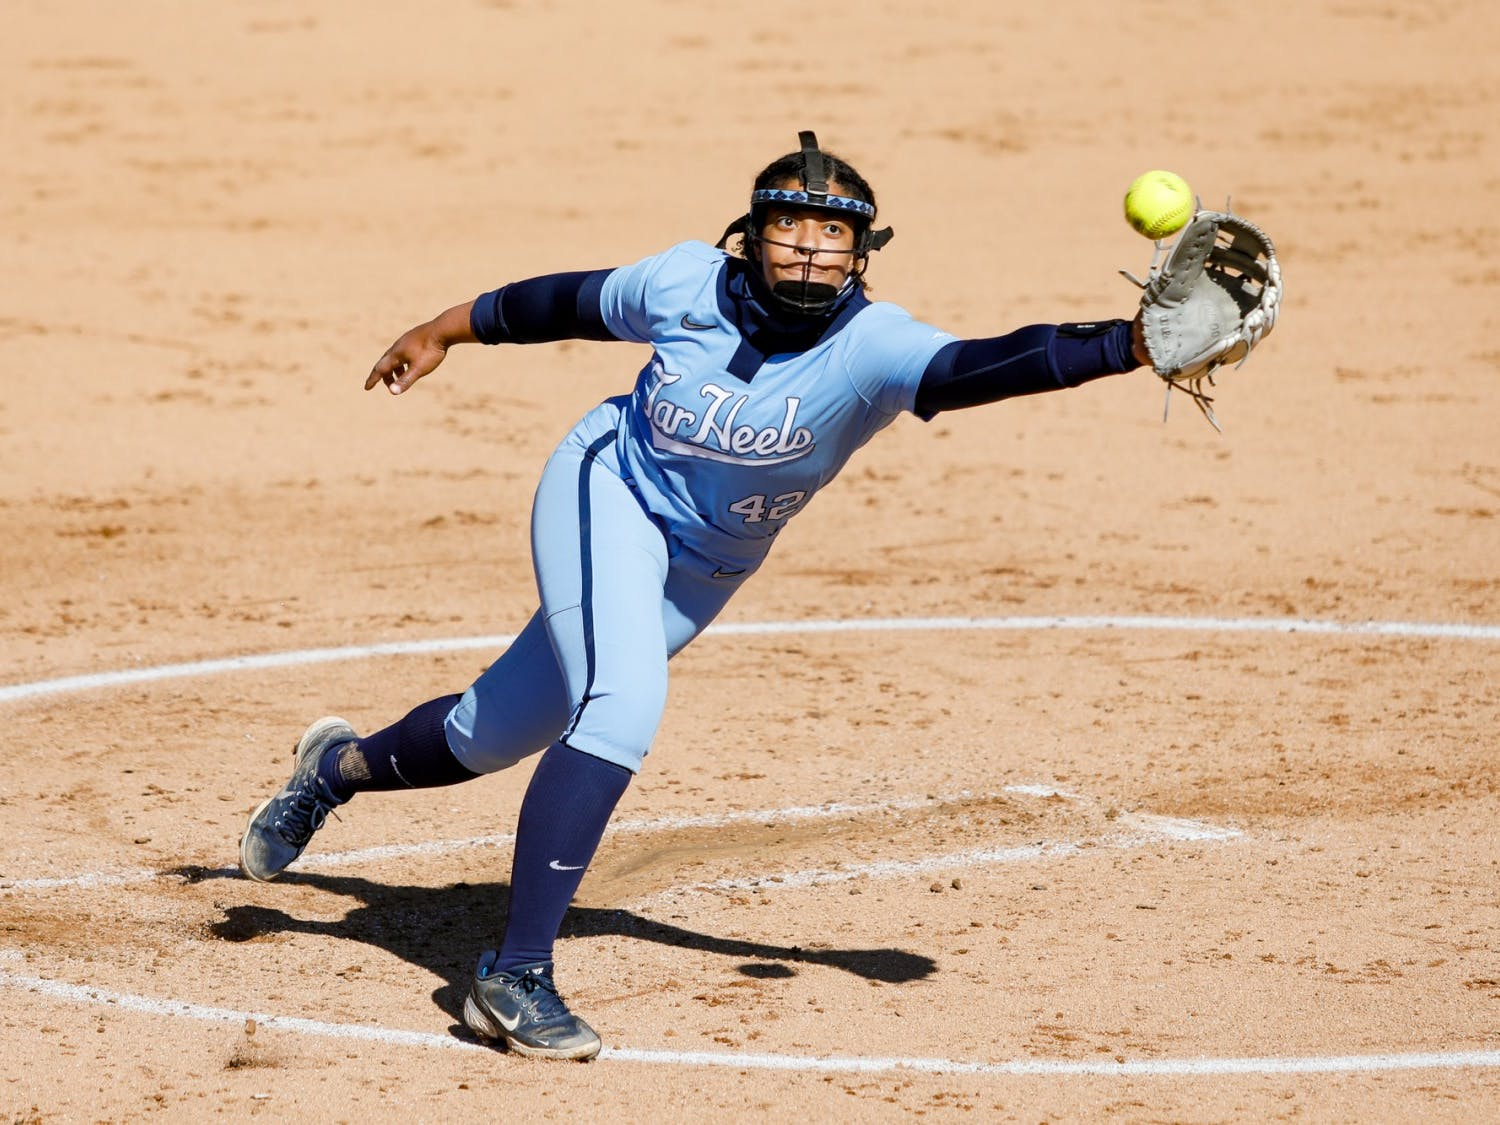 UNC junior pitcher Hannah George (42) attempts a catch in Anderson Softball Stadium in Chapel Hill, NC on Feb. 20, 2021. The Syracuse Orange beat the Tar Heels 3-2.